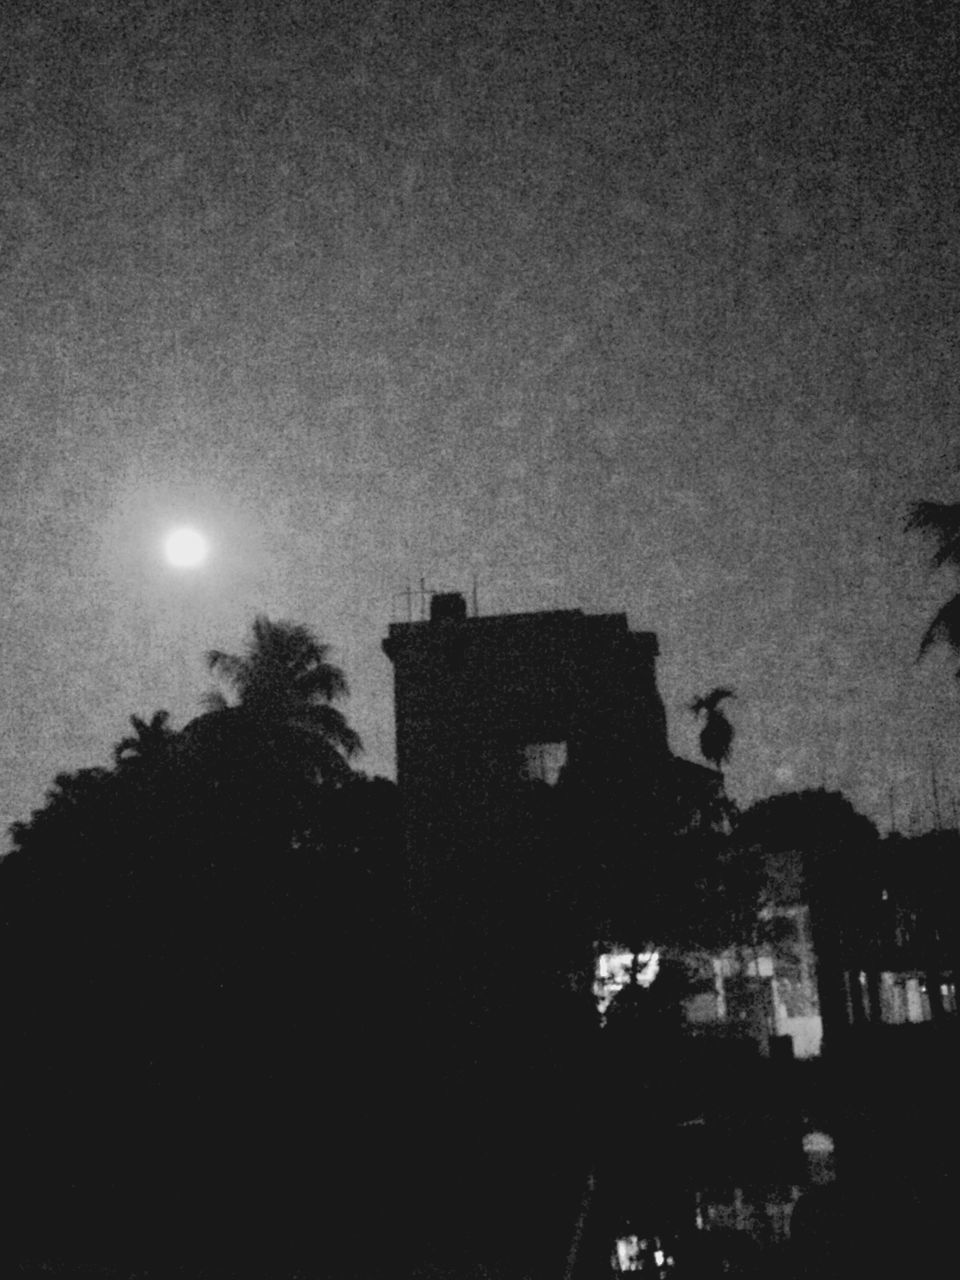 night, moon, outdoors, building exterior, built structure, architecture, silhouette, sky, no people, low angle view, tree, illuminated, nature